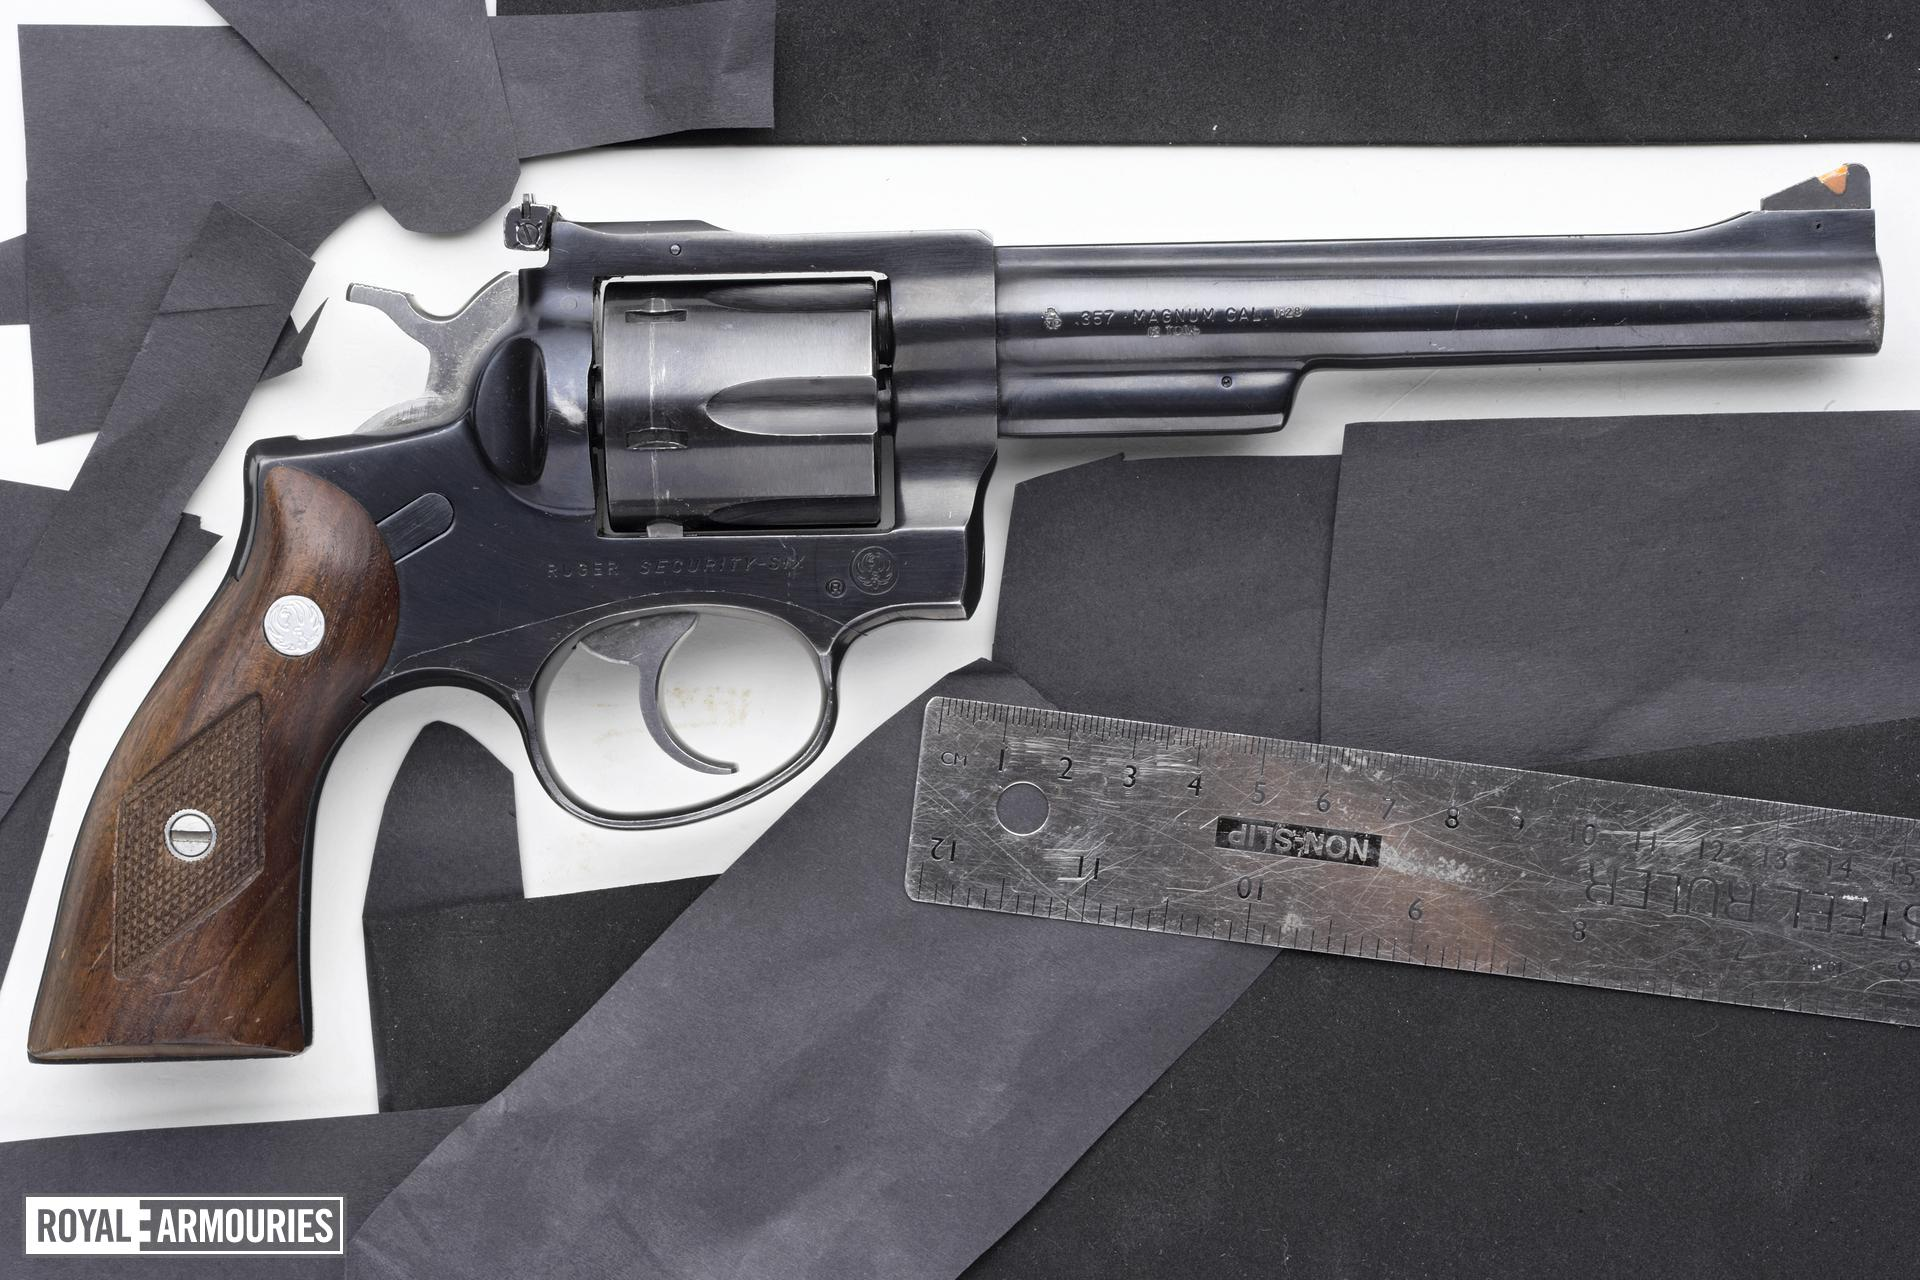 Centrefire six-shot revolver - Ruger Security Six